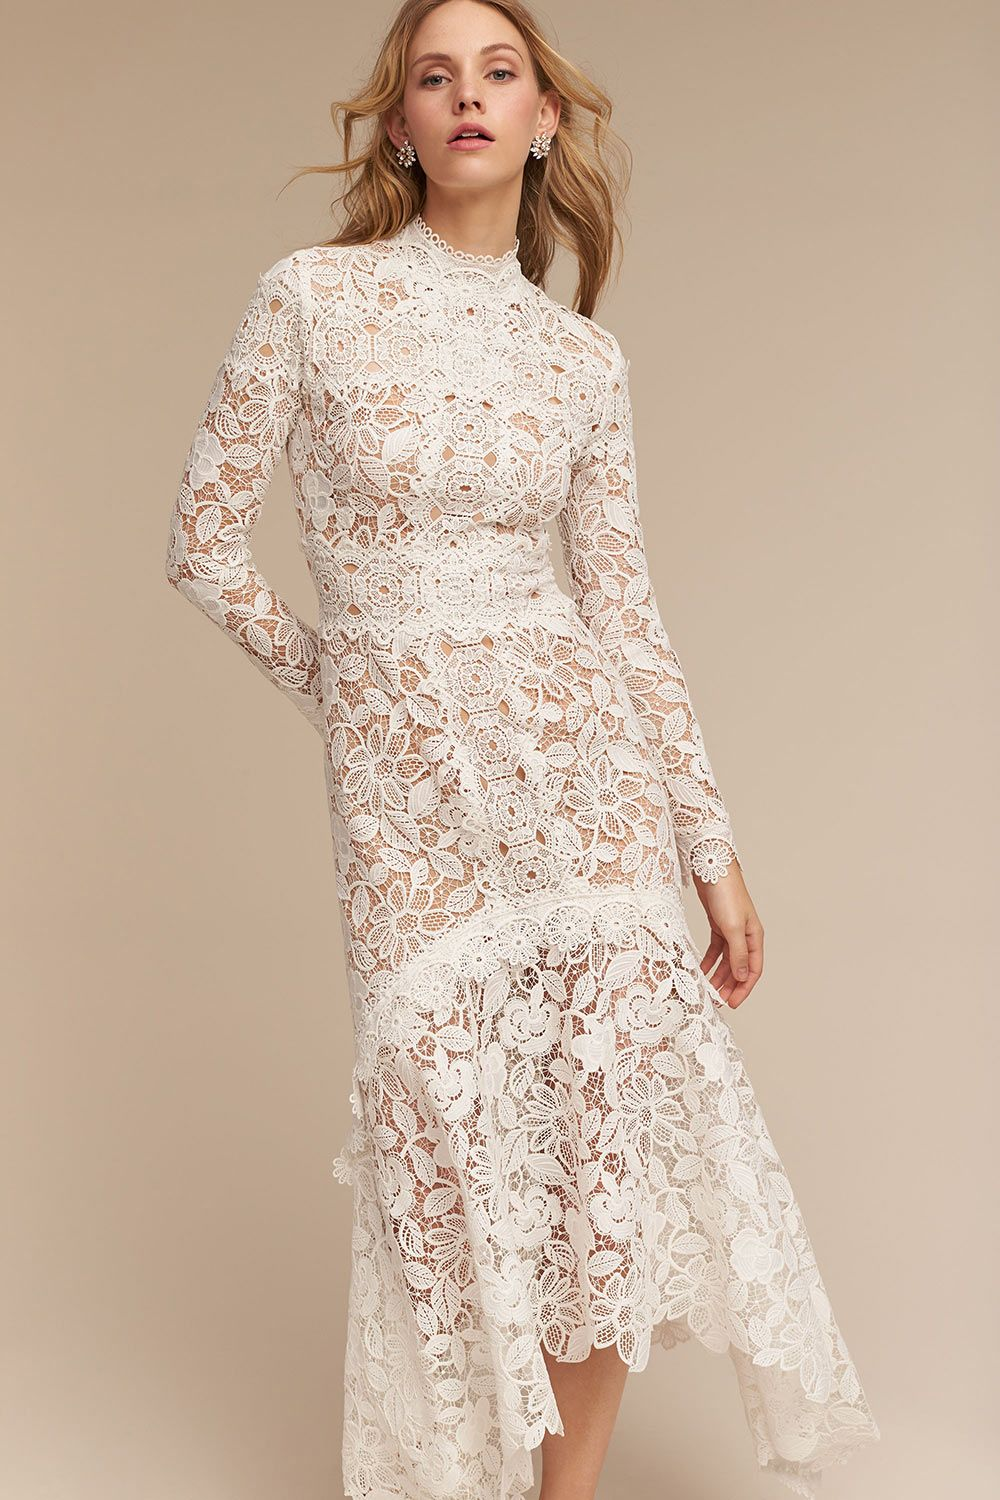 Bhldn boho luxe bridal trend a giveaway layer cake in